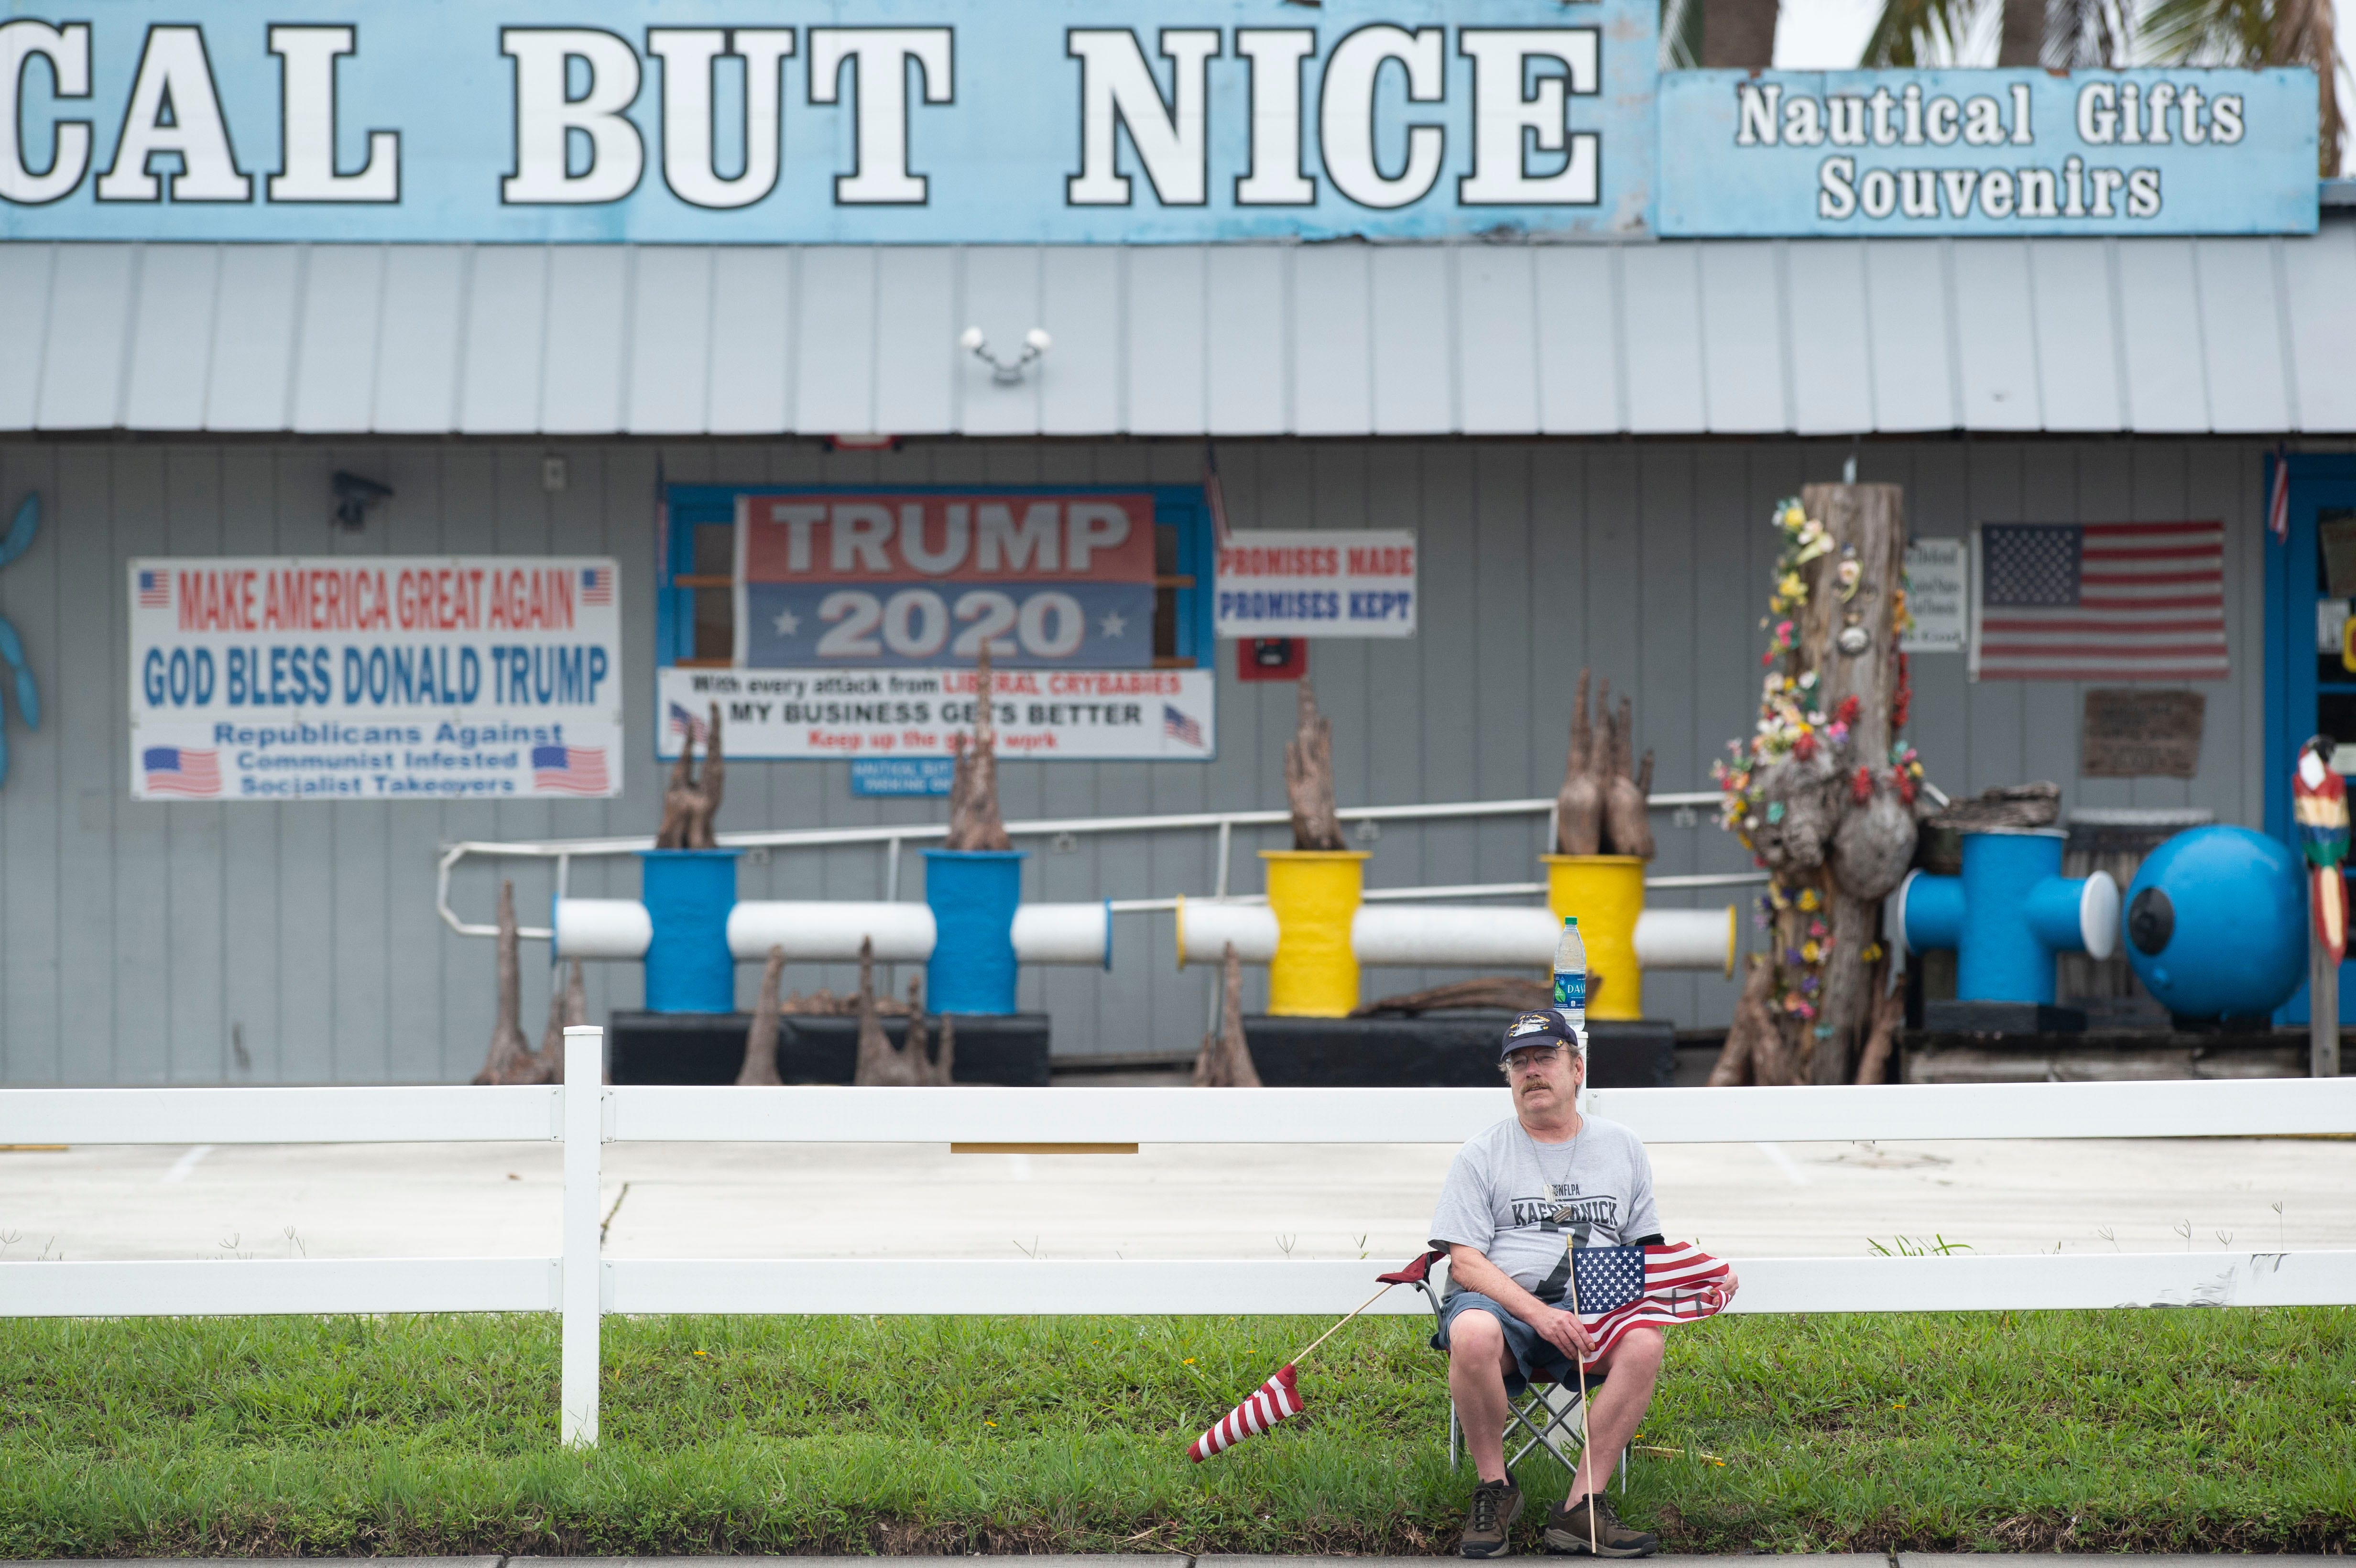 """Nathan Dodge, of Stuart, stays separate from a group of more than 250 people who gathered for a Black Lives Matter protest along U.S. 1 at the intersection of Southeast Luckhardt Street on Saturday, June 6, 2020, in Stuart. Within a couple of hours, people filled the east and west sides of the sidewalk in front of several businesses, including Nautical But Nice and Chick-fil-A. """"Liberty and justice for all doesn't mean anything anymore, that's why America sucks,"""" Dodge said of why he was protesting."""